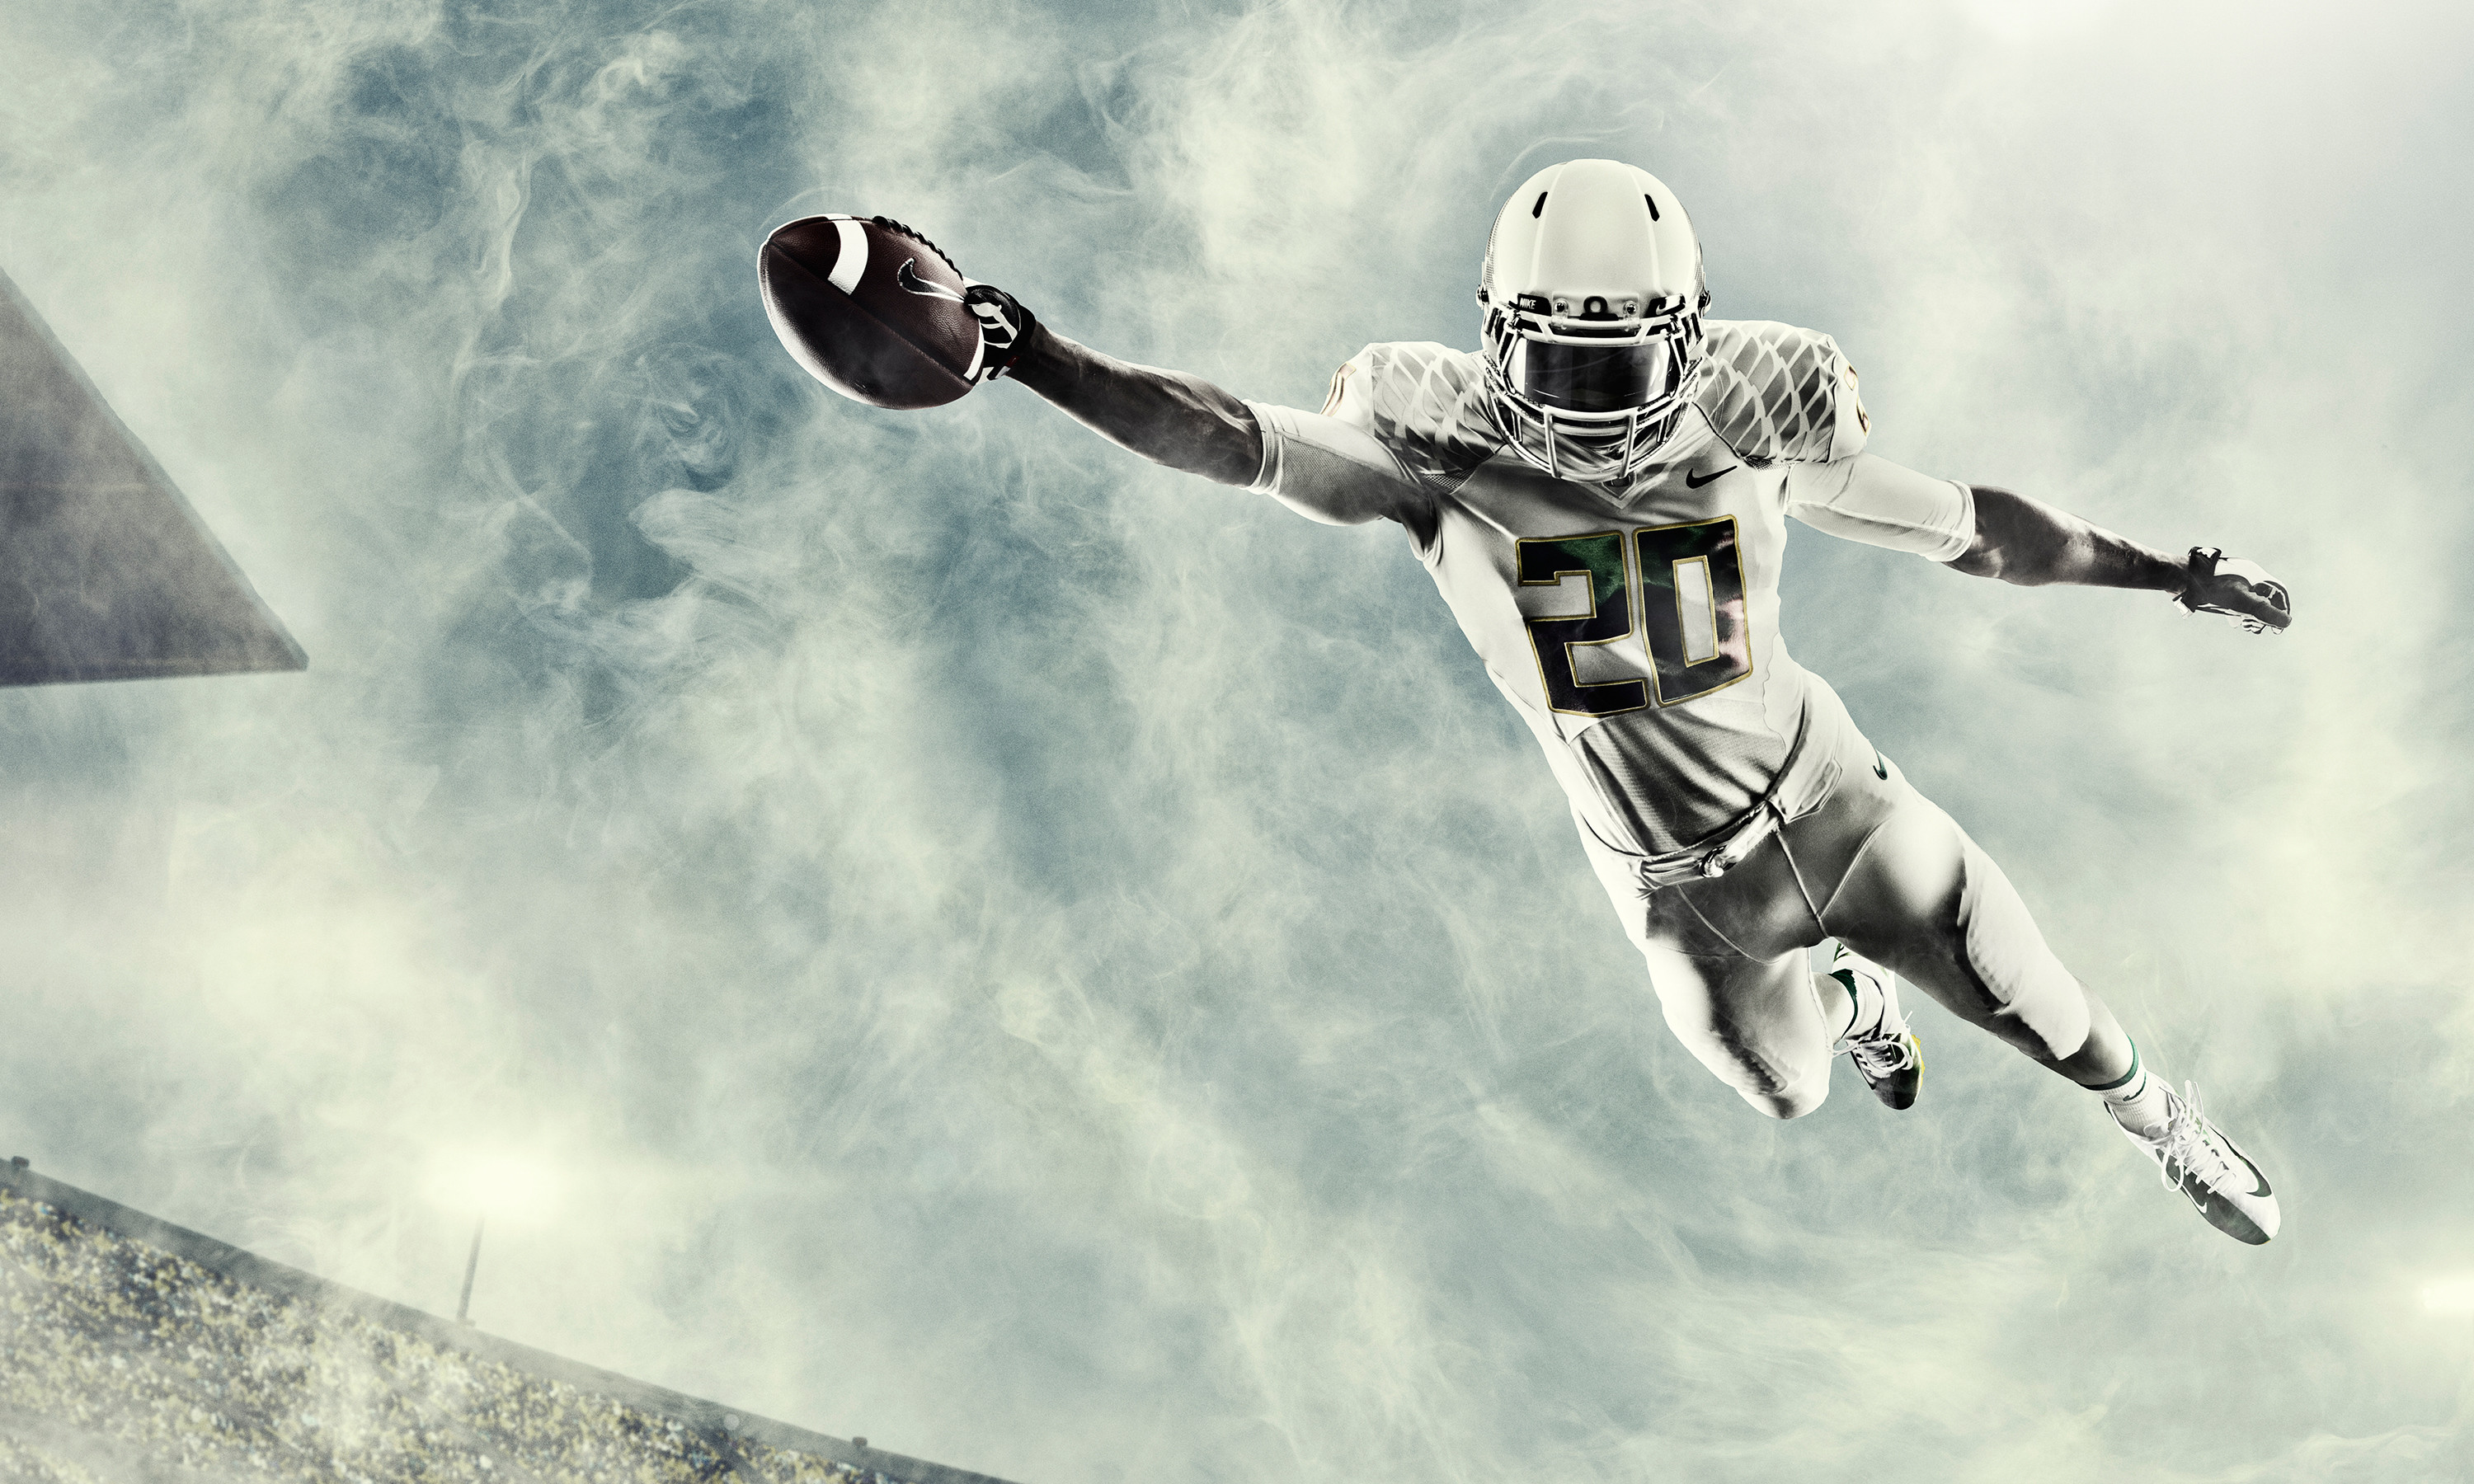 Newest Hd College Football Wallpapers Beautiful Football Hd Wallpapers Free Download 4k Ultra Hd Wallpapers Hd